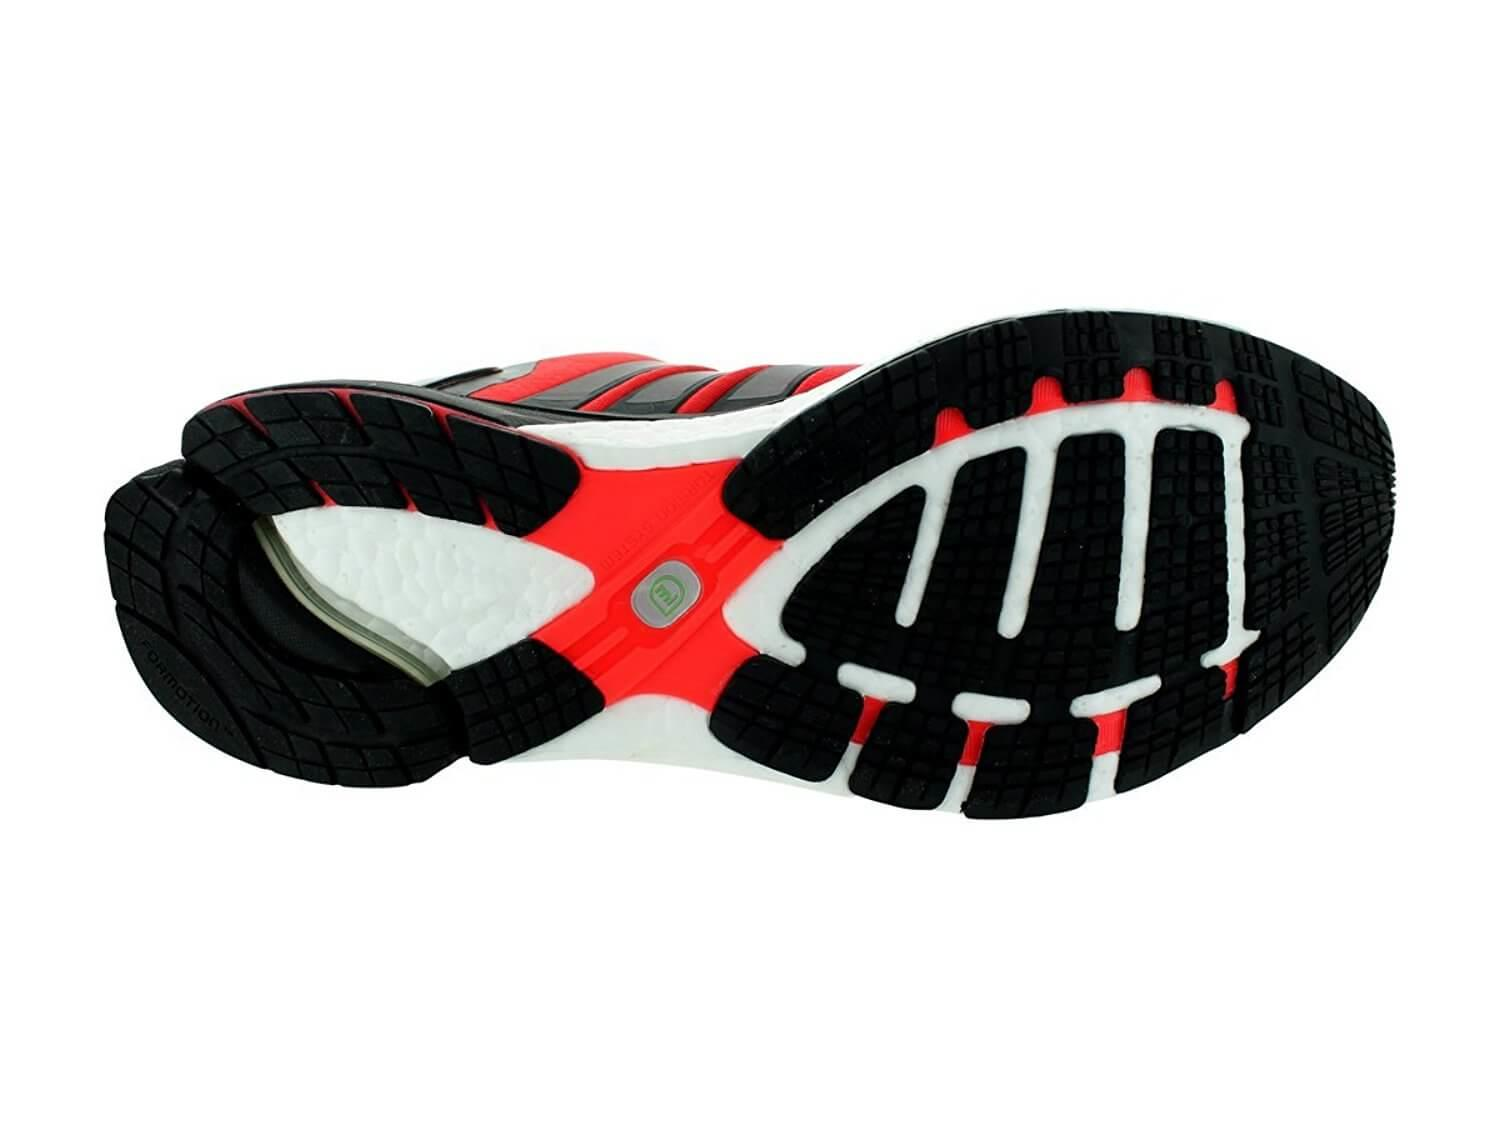 ... the outsole of the Adidas Adistar Boost offers great traction on a  variety of surfaces ... 4ba6039a4